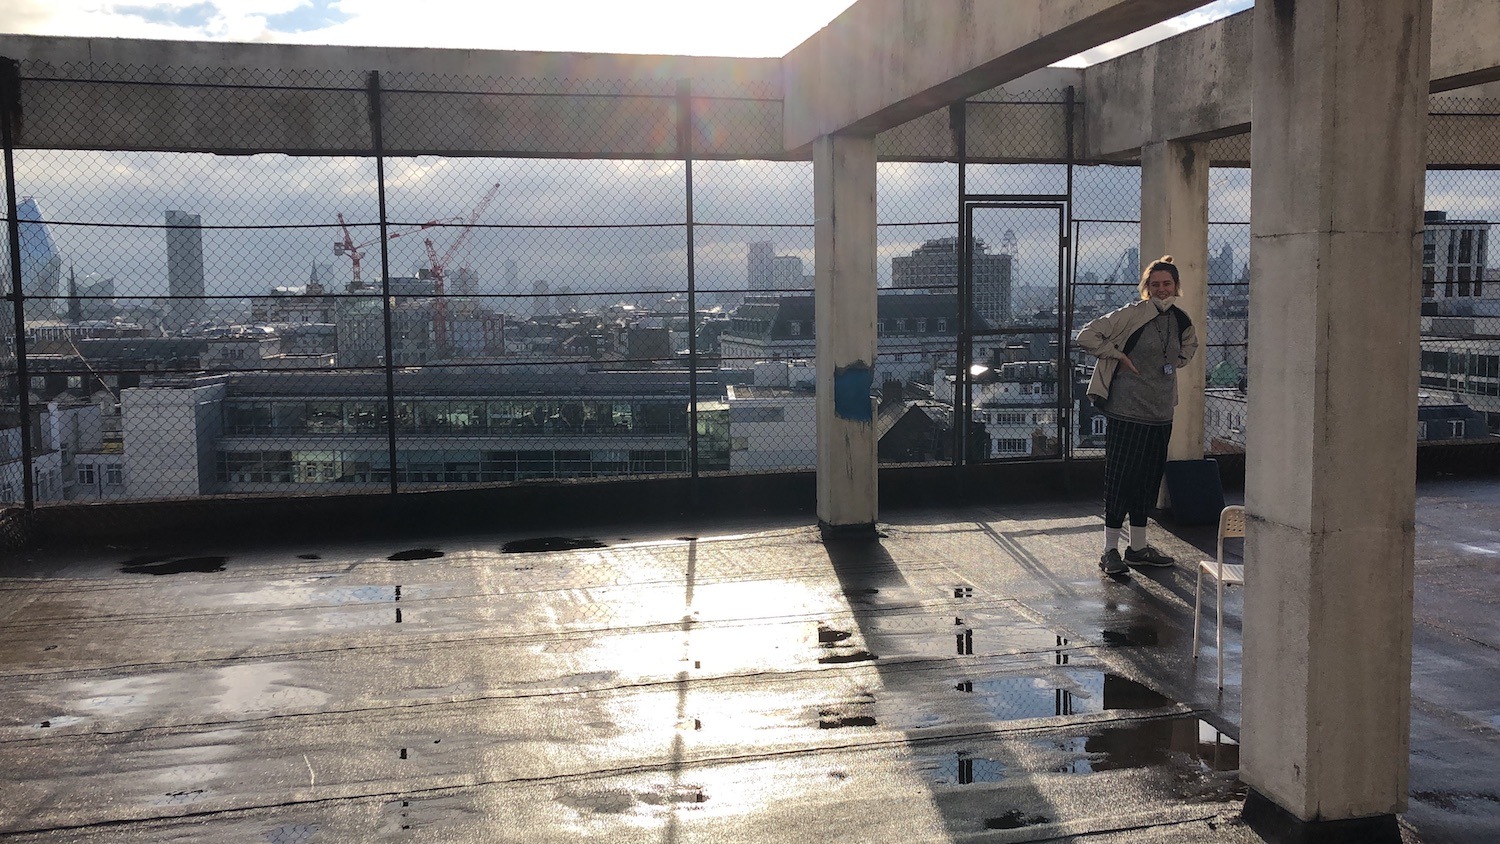 agnes standing on a roof overlooking the city of london